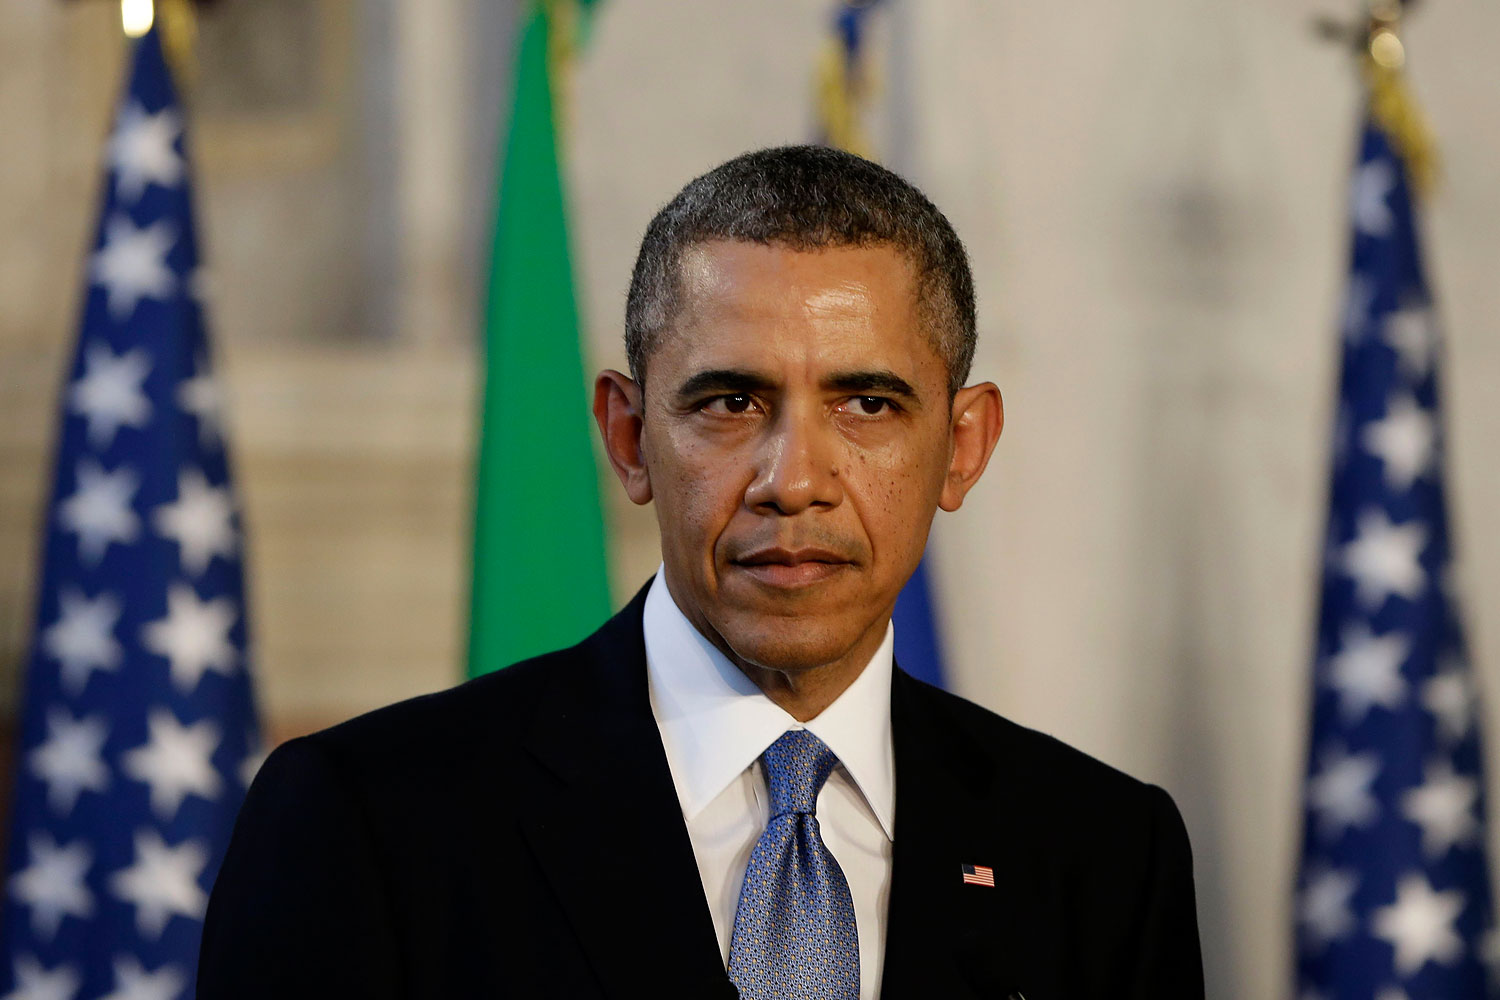 President Barack Obama listens during a joint news conference with Italian Prime Minister Matteo Renzi, Thursday, March 27, 2014, at Villa Madama in Rome. (AP Photo/Pablo Martinez Monsivais)